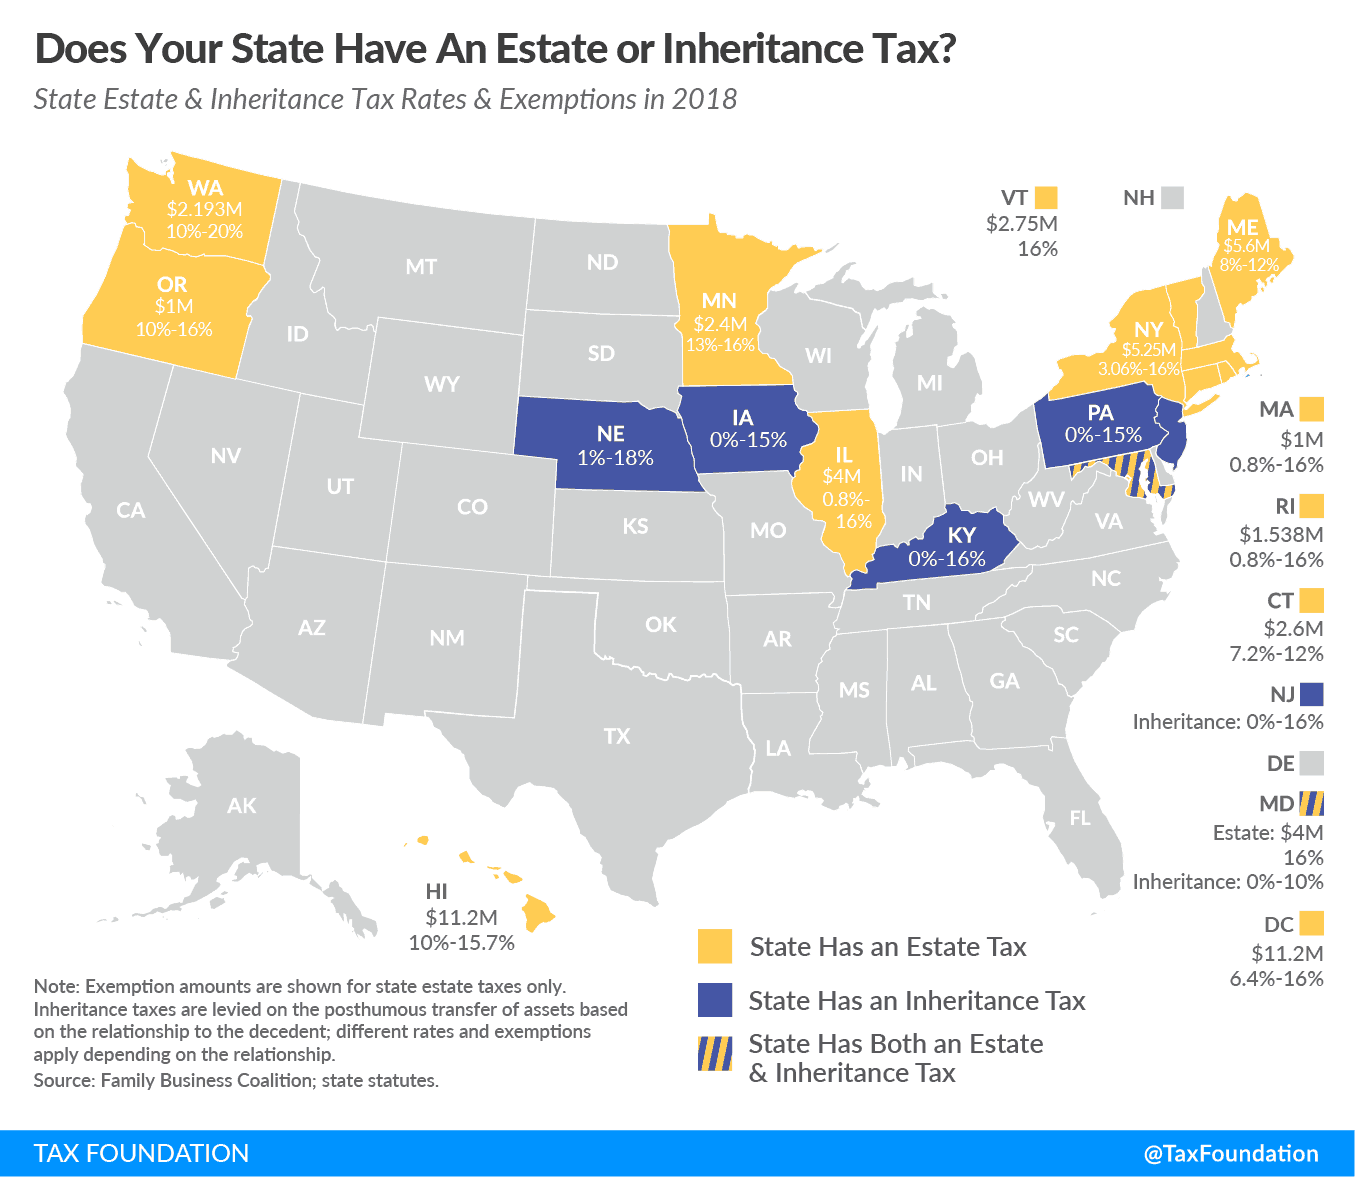 Federal Estate Tax & Inheritance Tax: What You Need to Know (2018)